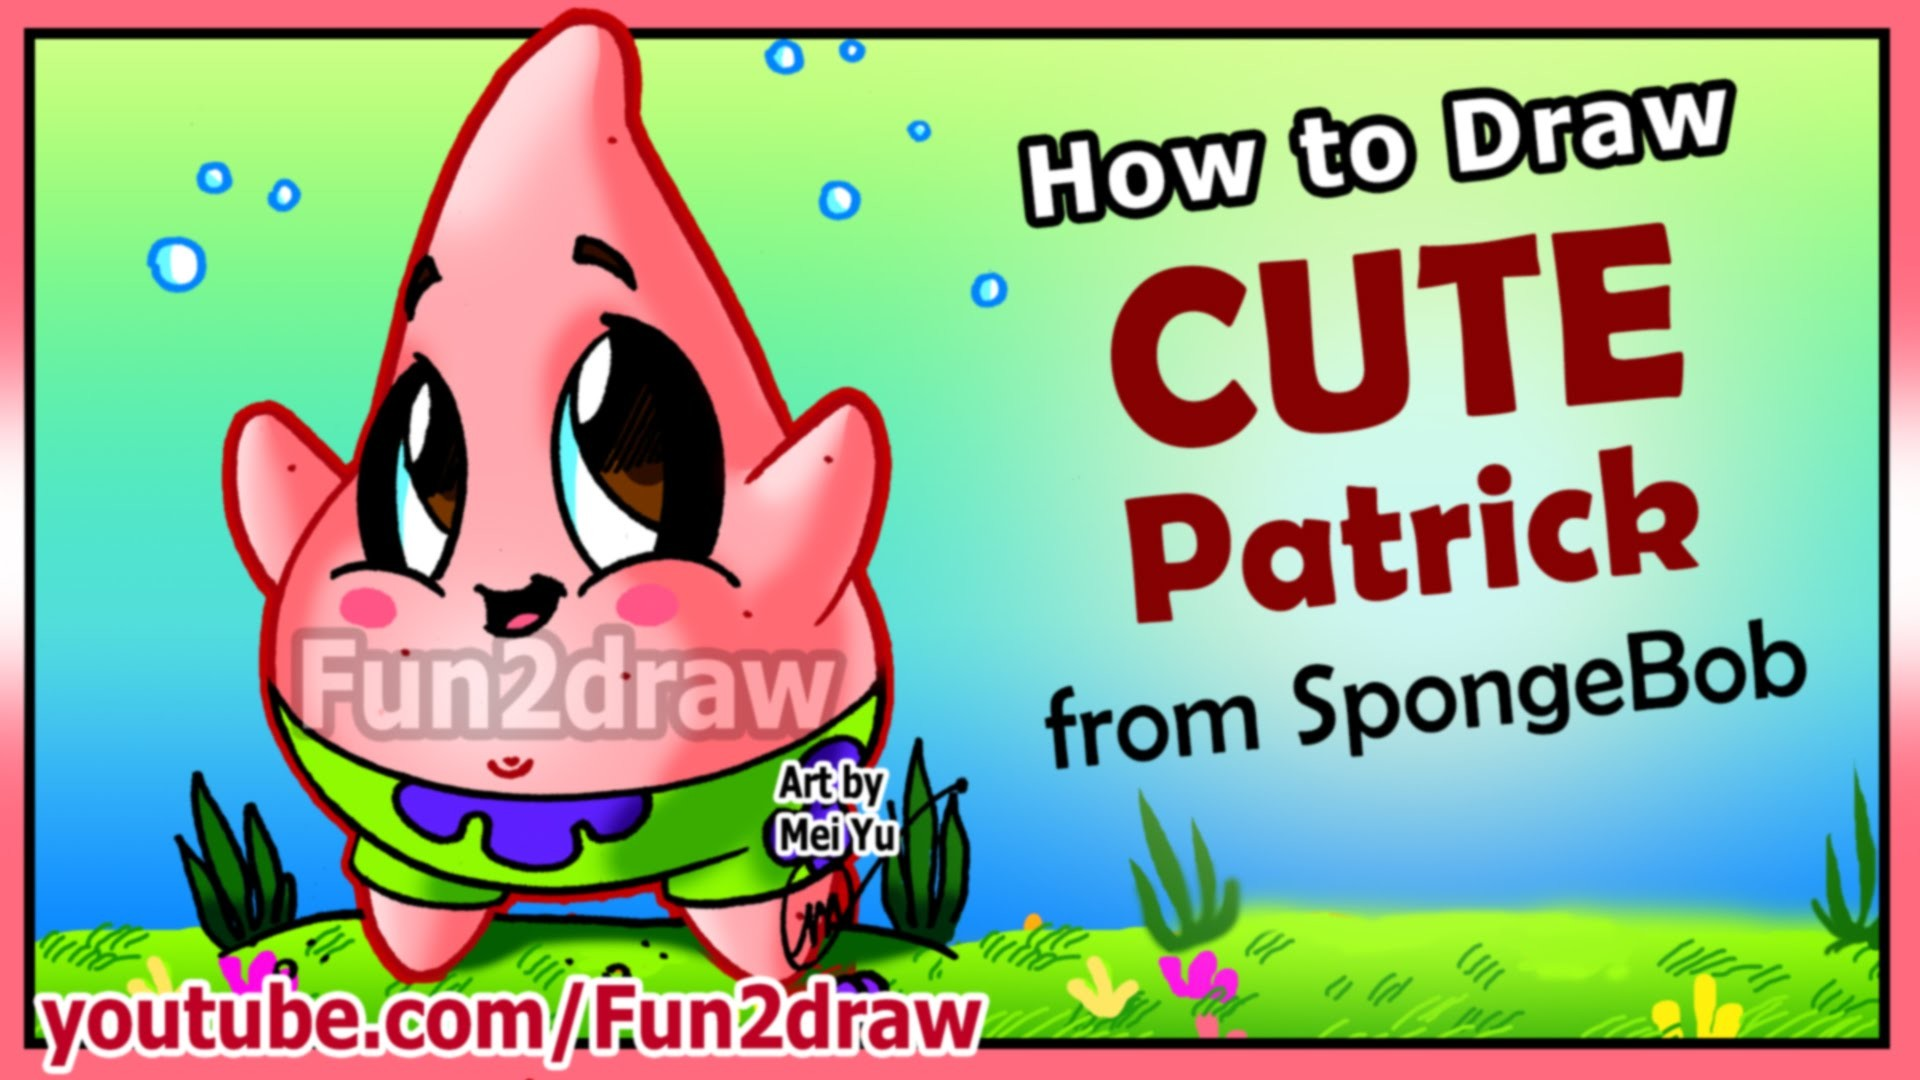 1920x1080 How to Draw Step by Step - CUTE Patrick Star + Funny EXTRA - Spongebob  Cartoons Fun2draw - YouTube